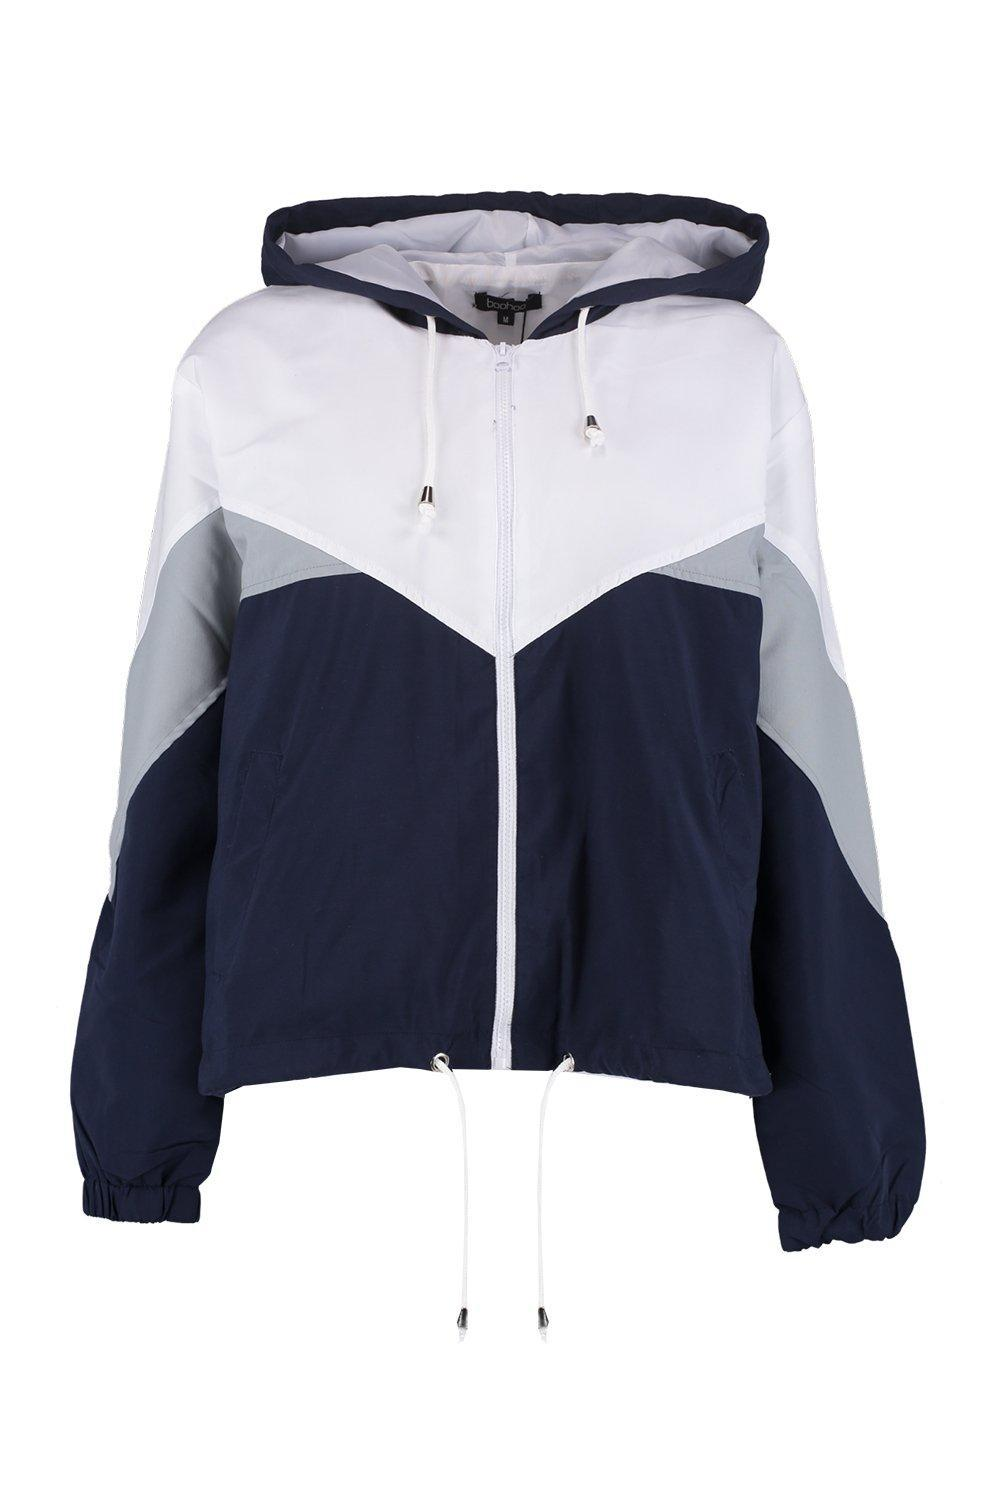 Boohoo Hooded Panelled Windbreaker in Blue - Lyst dd28639865